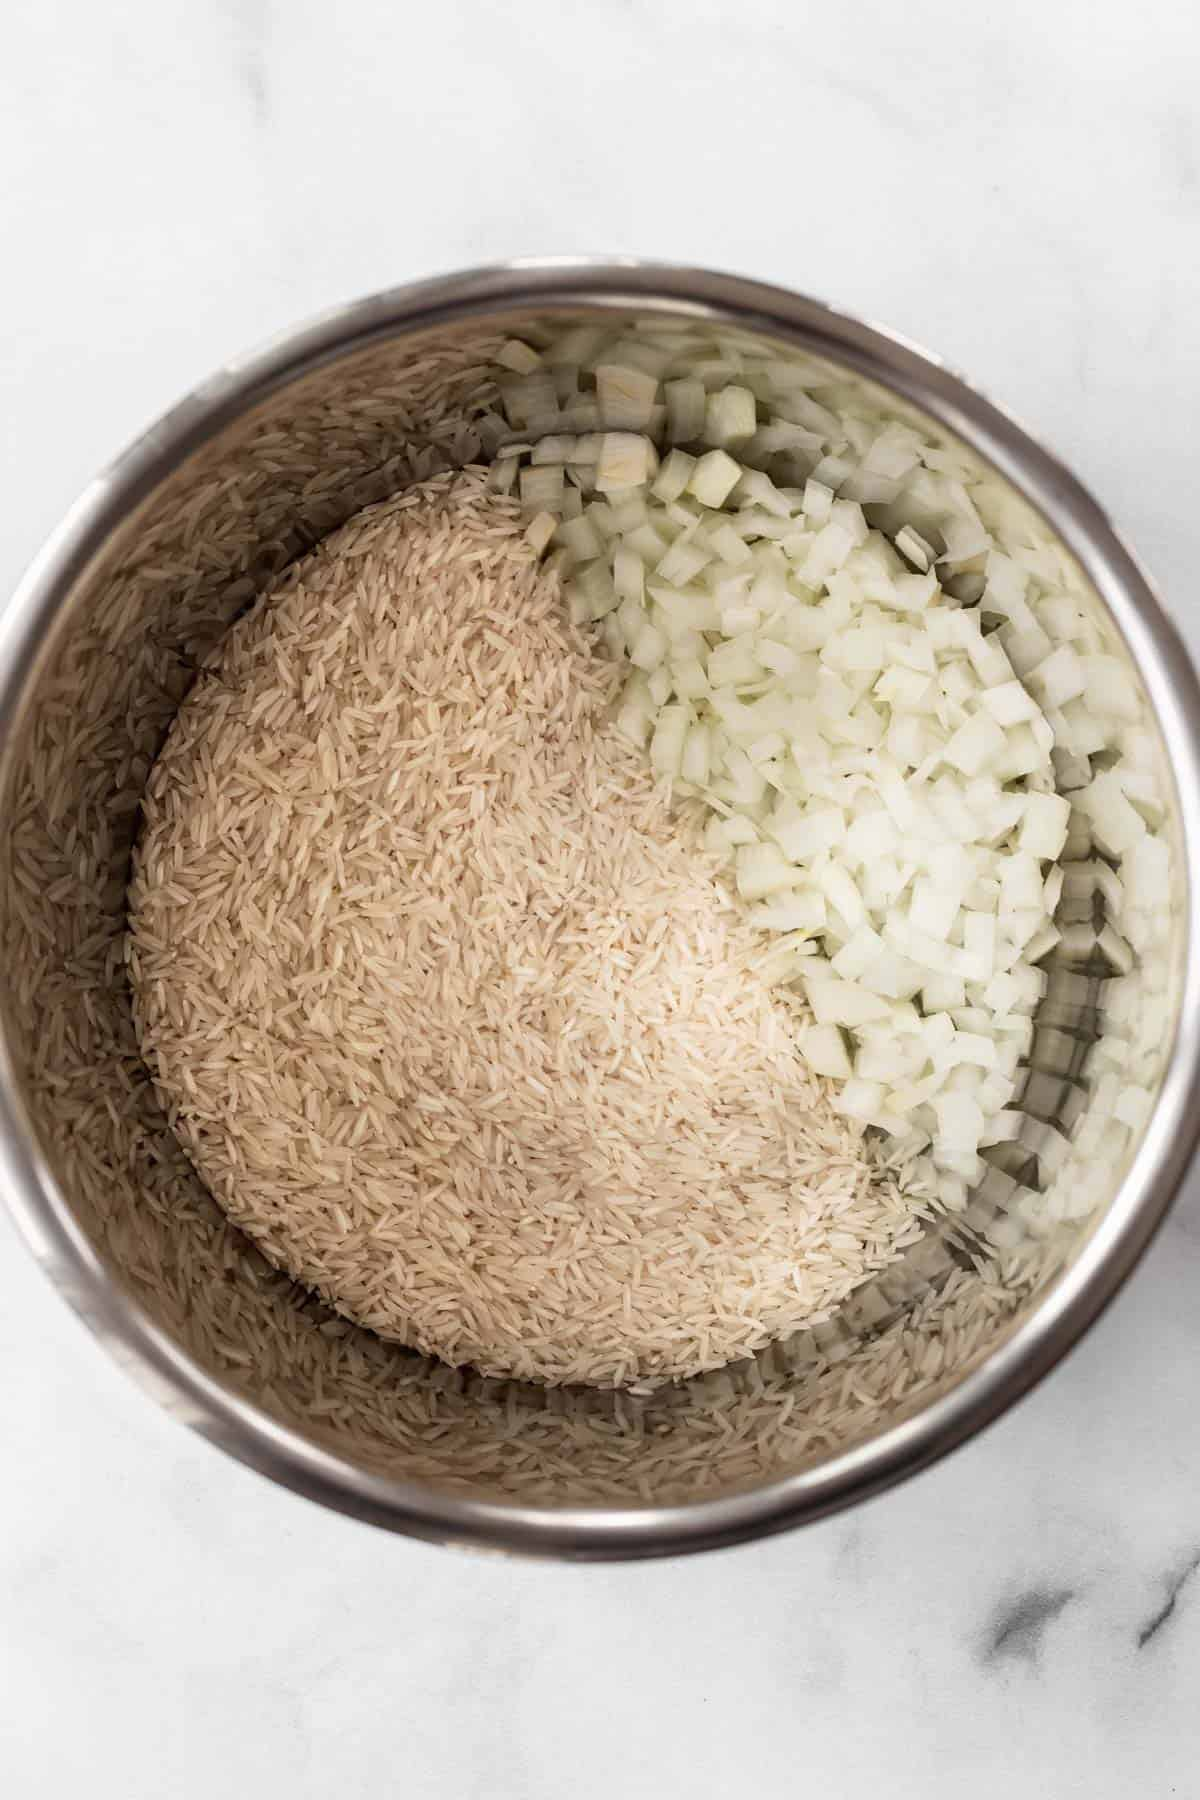 Chopped onions and basmati rice in an instant pot.